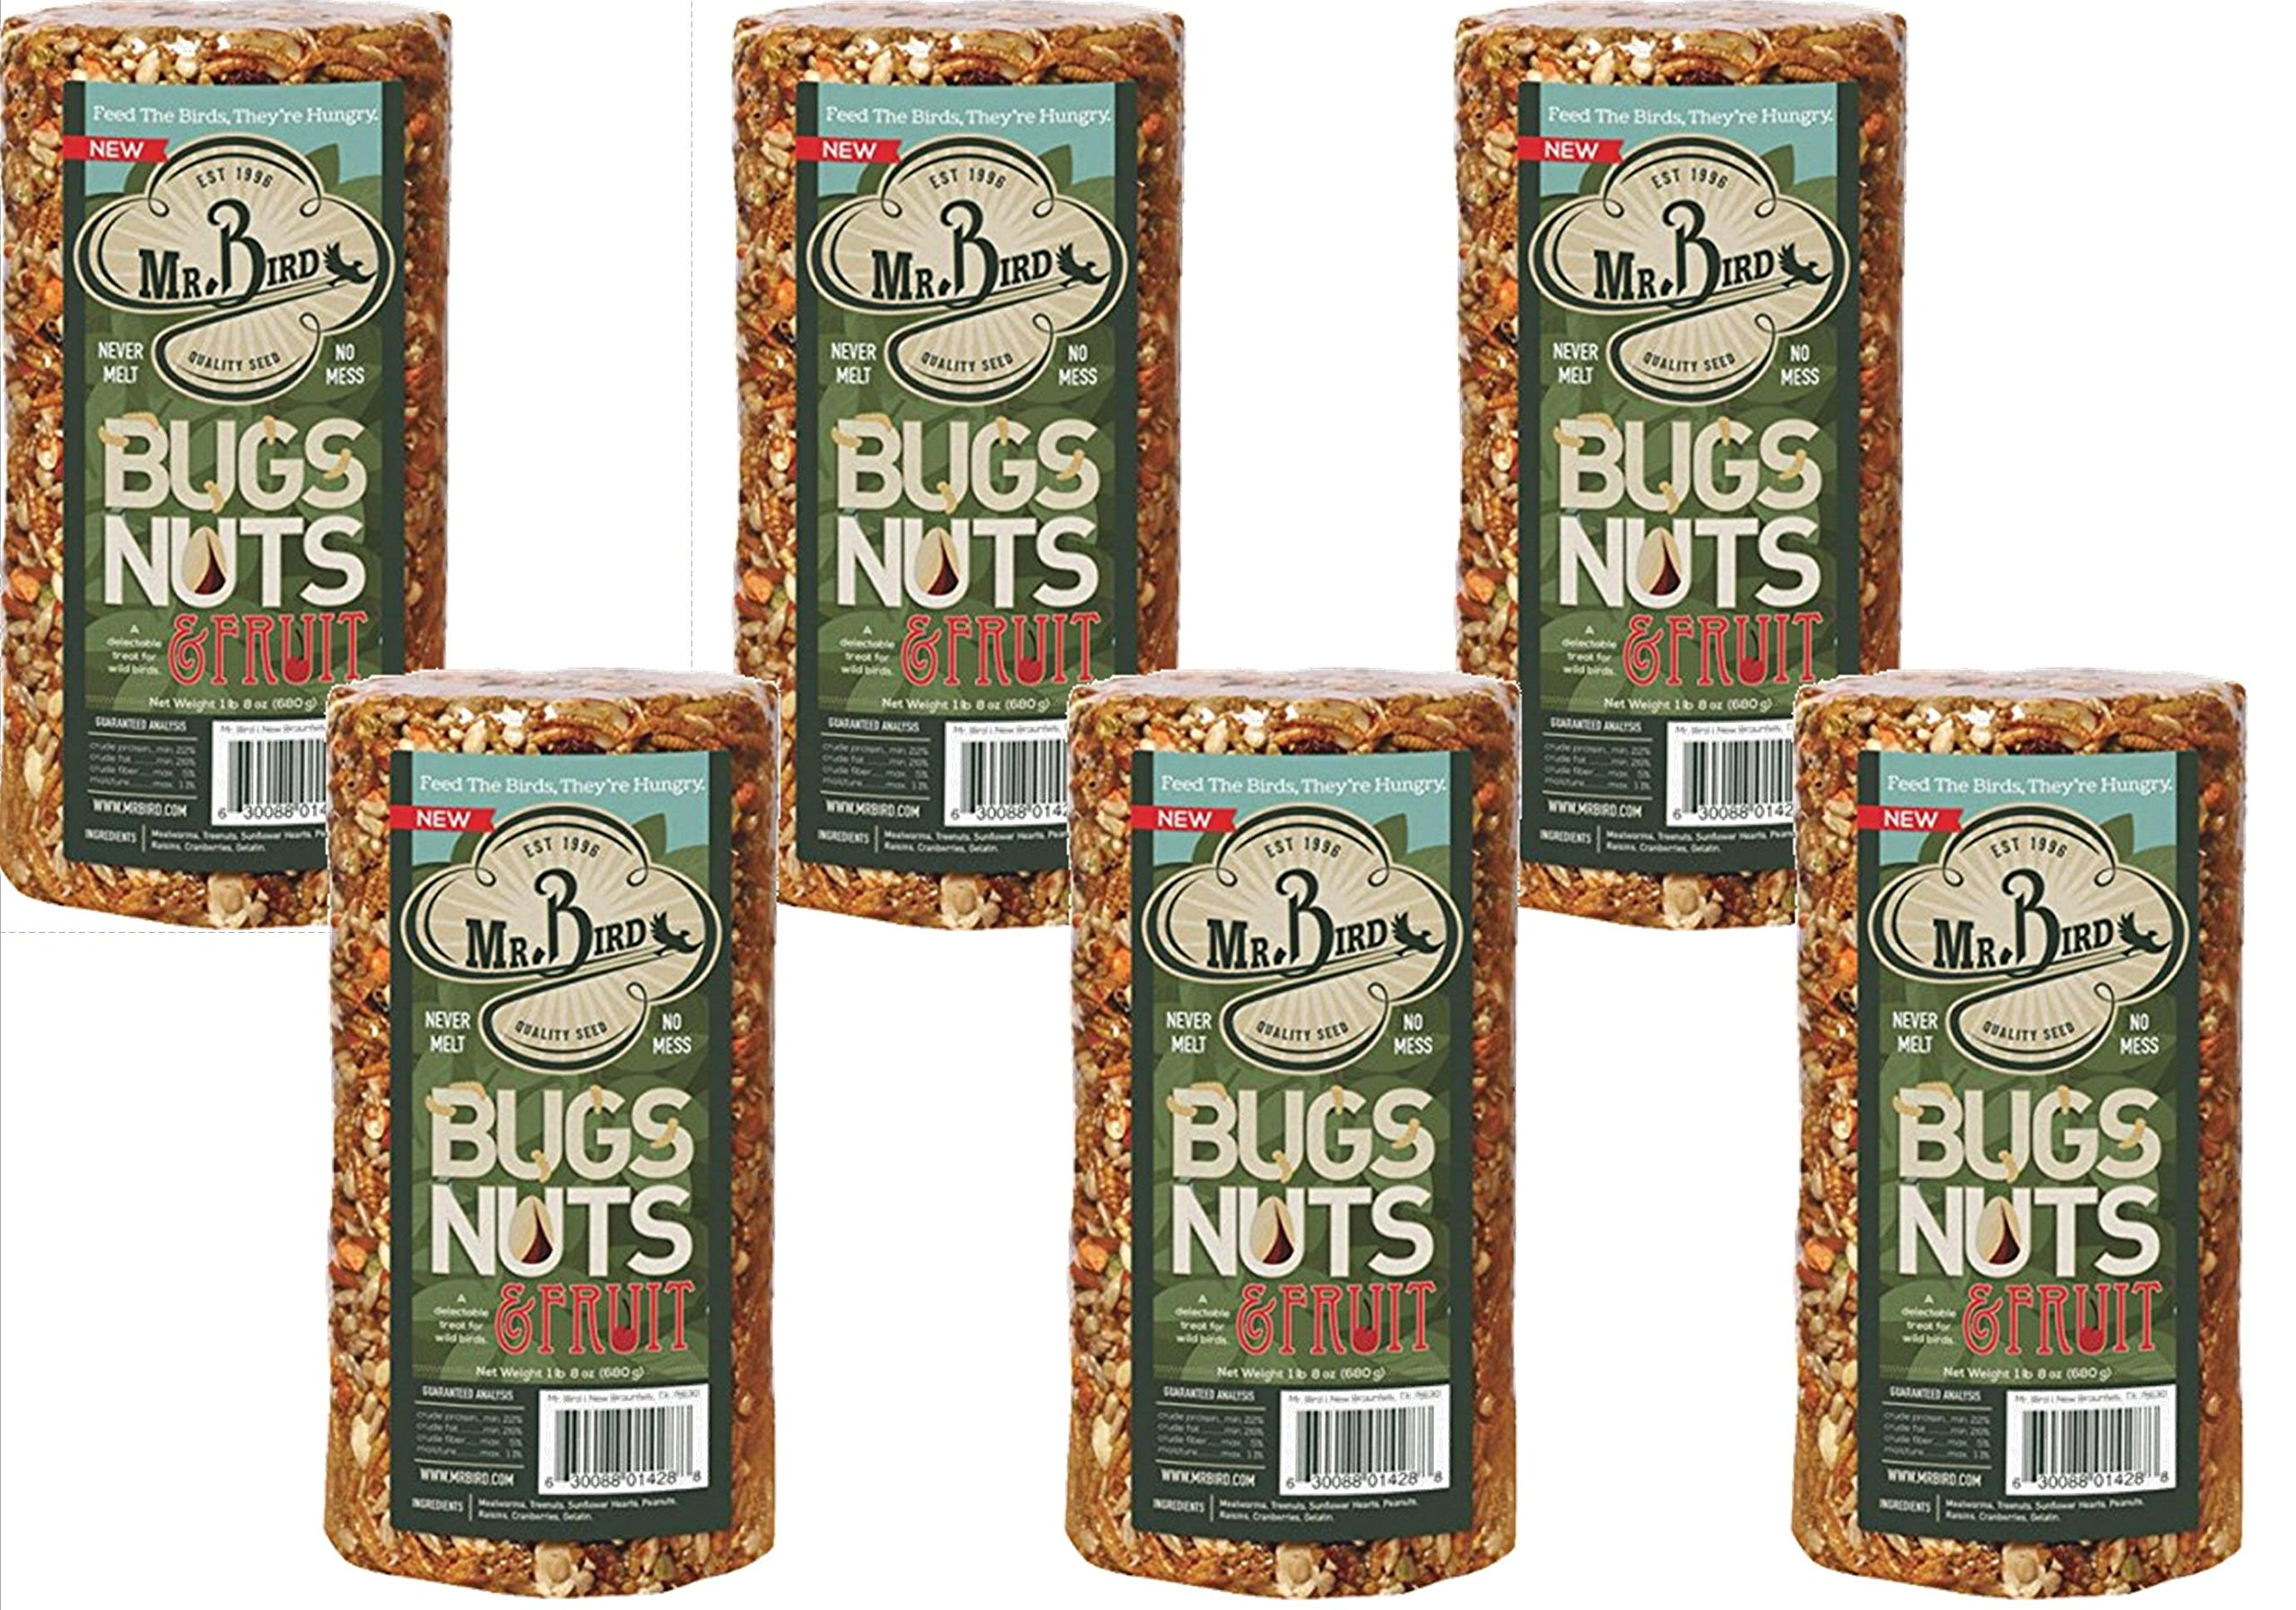 6-Pack of Mr Bird's Bugs Nuts & Fruit Small Cylinder 24 oz.